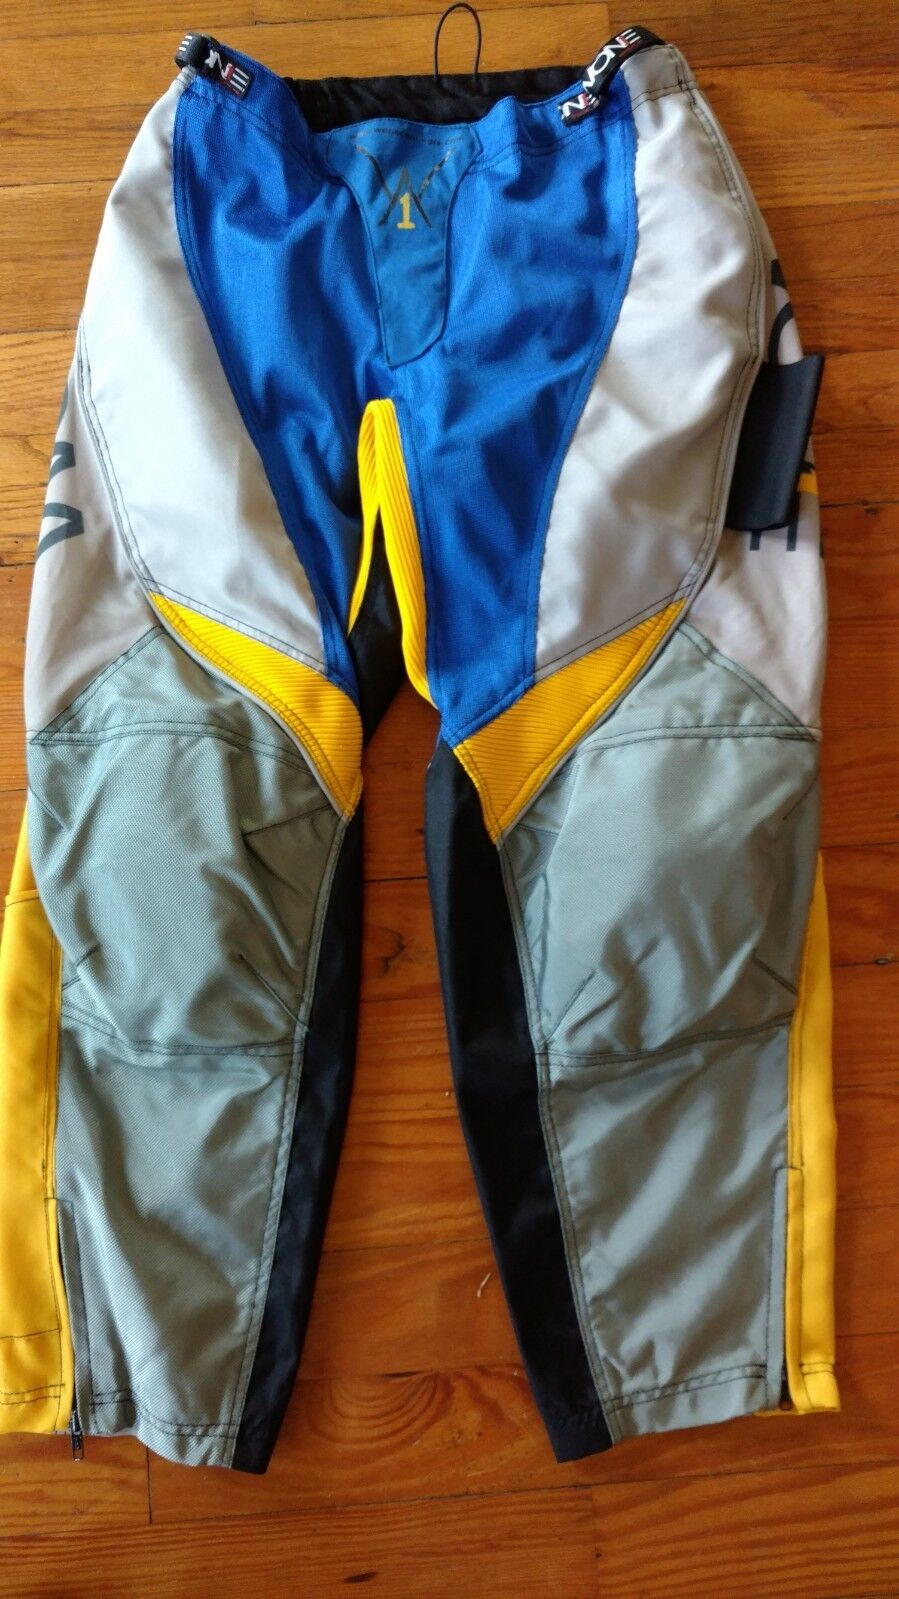 Wone Large blu grigio giallo Paintball Pants